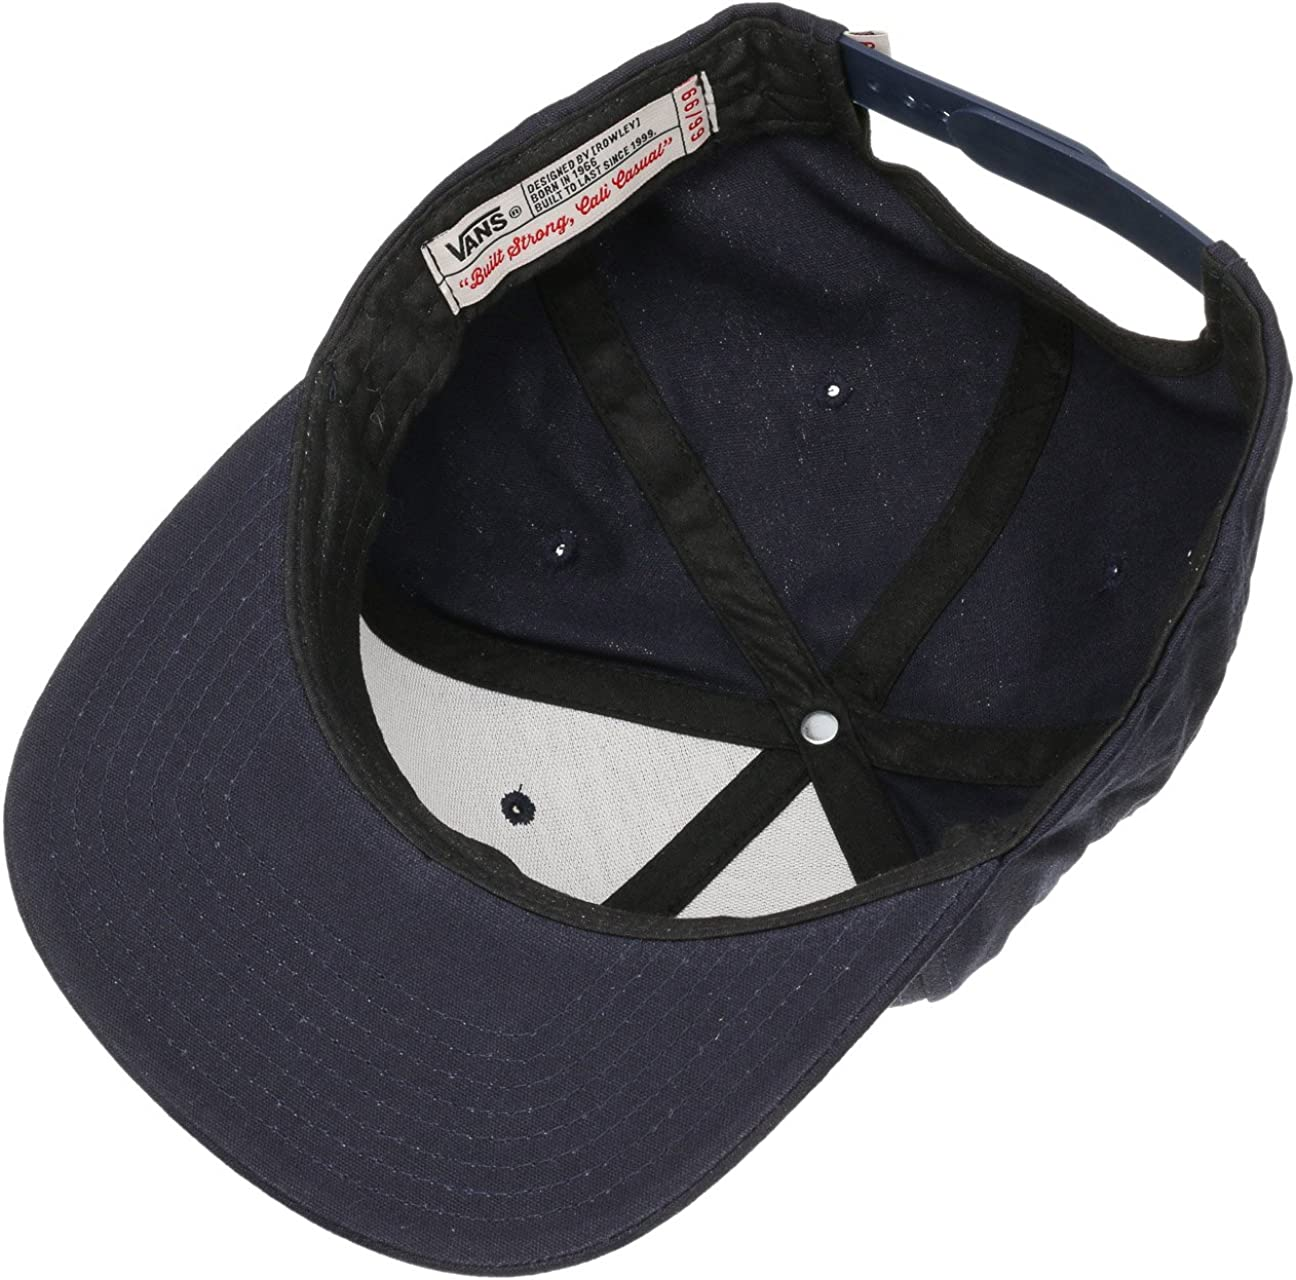 Vans Geoff Rowley 6 Panel Snapback Hat Navy Cap One Size Fits Most ...